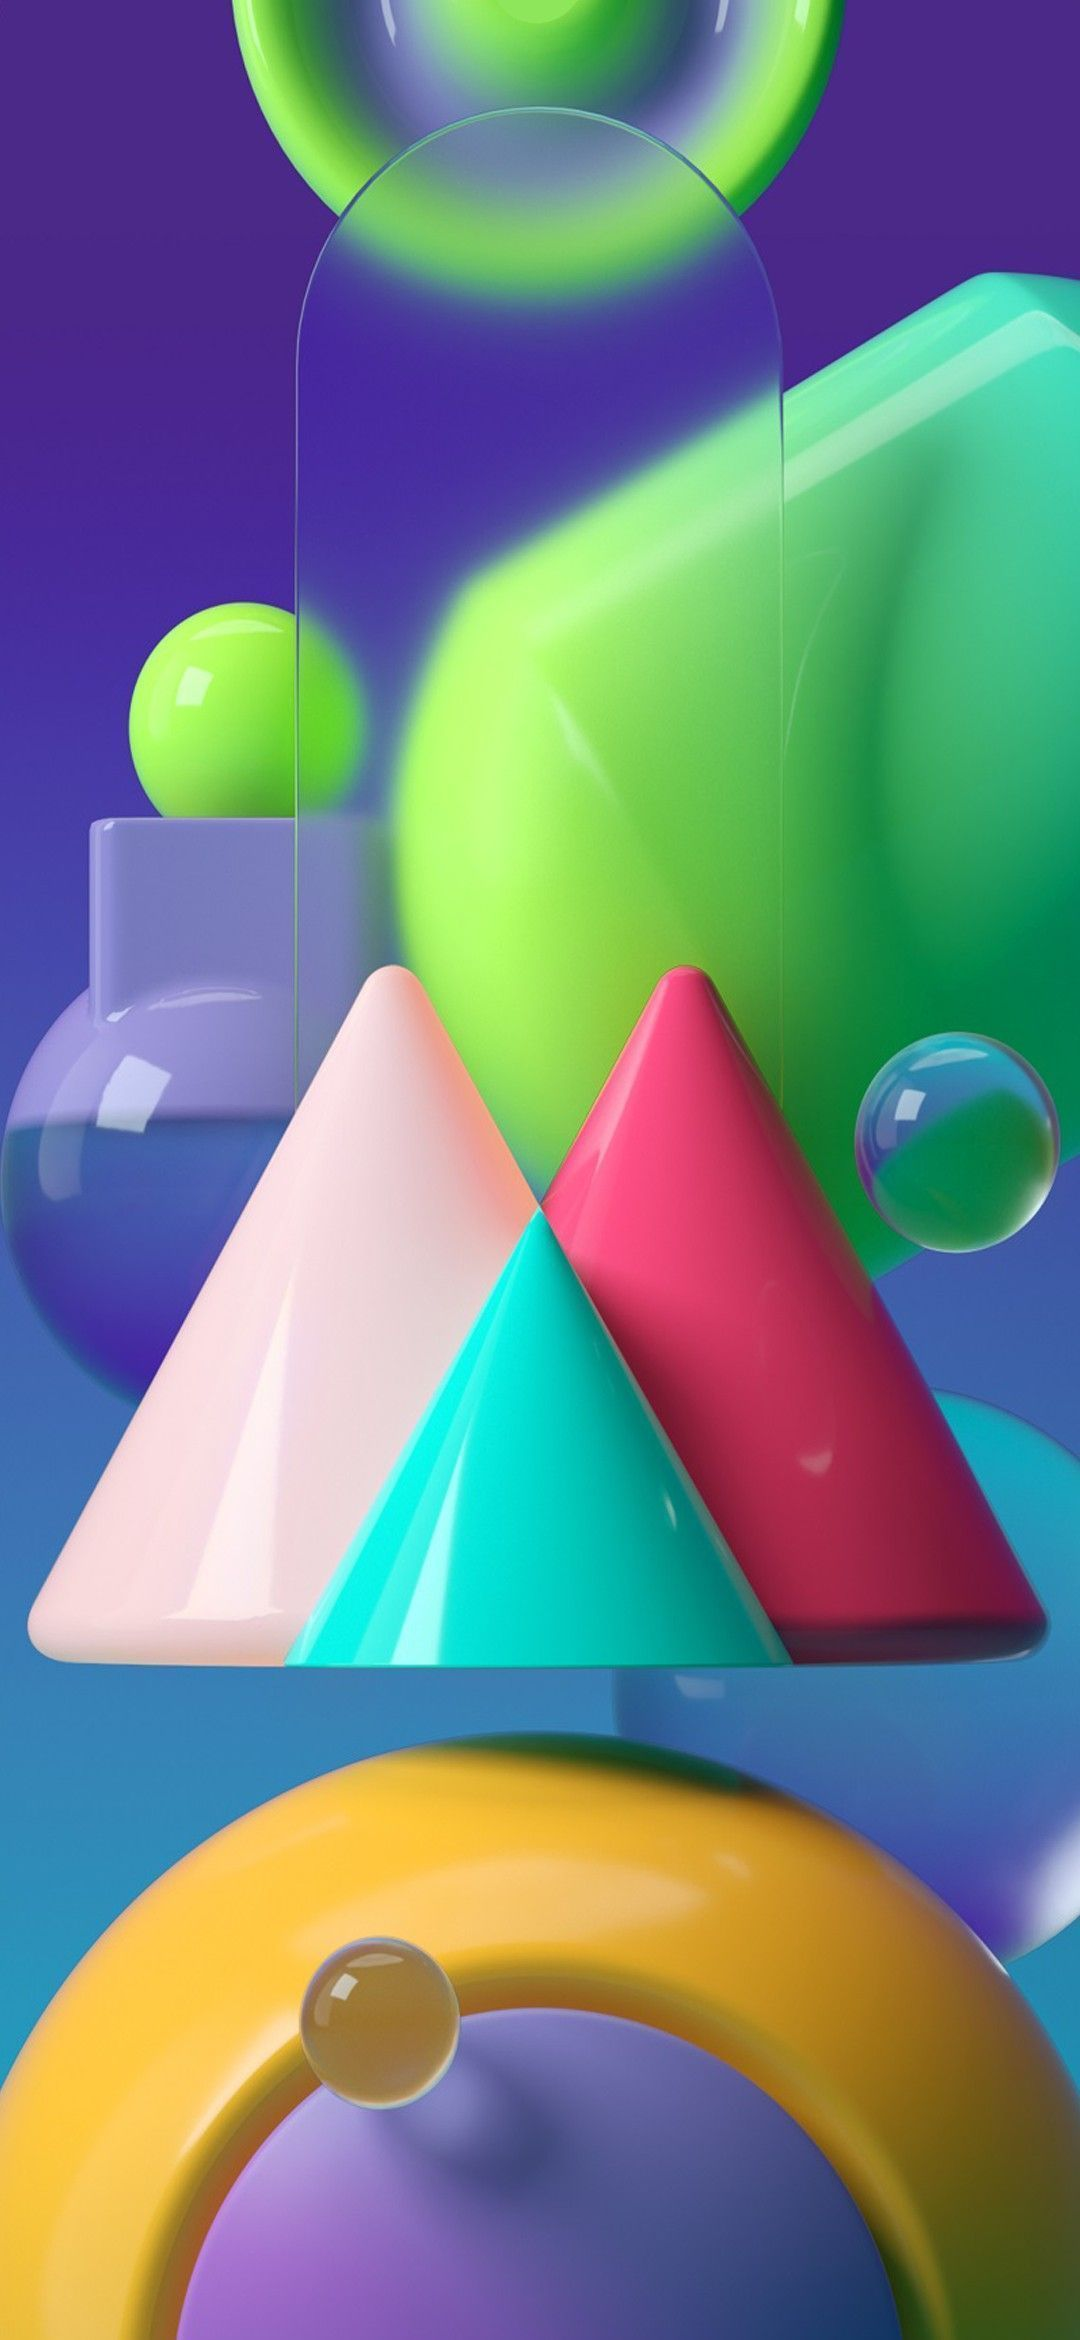 Samsung Galaxy M21 Wallpaper In 2020 Samsung Galaxy Wallpaper Android Samsung Galaxy Wallpaper Samsung Wallpaper